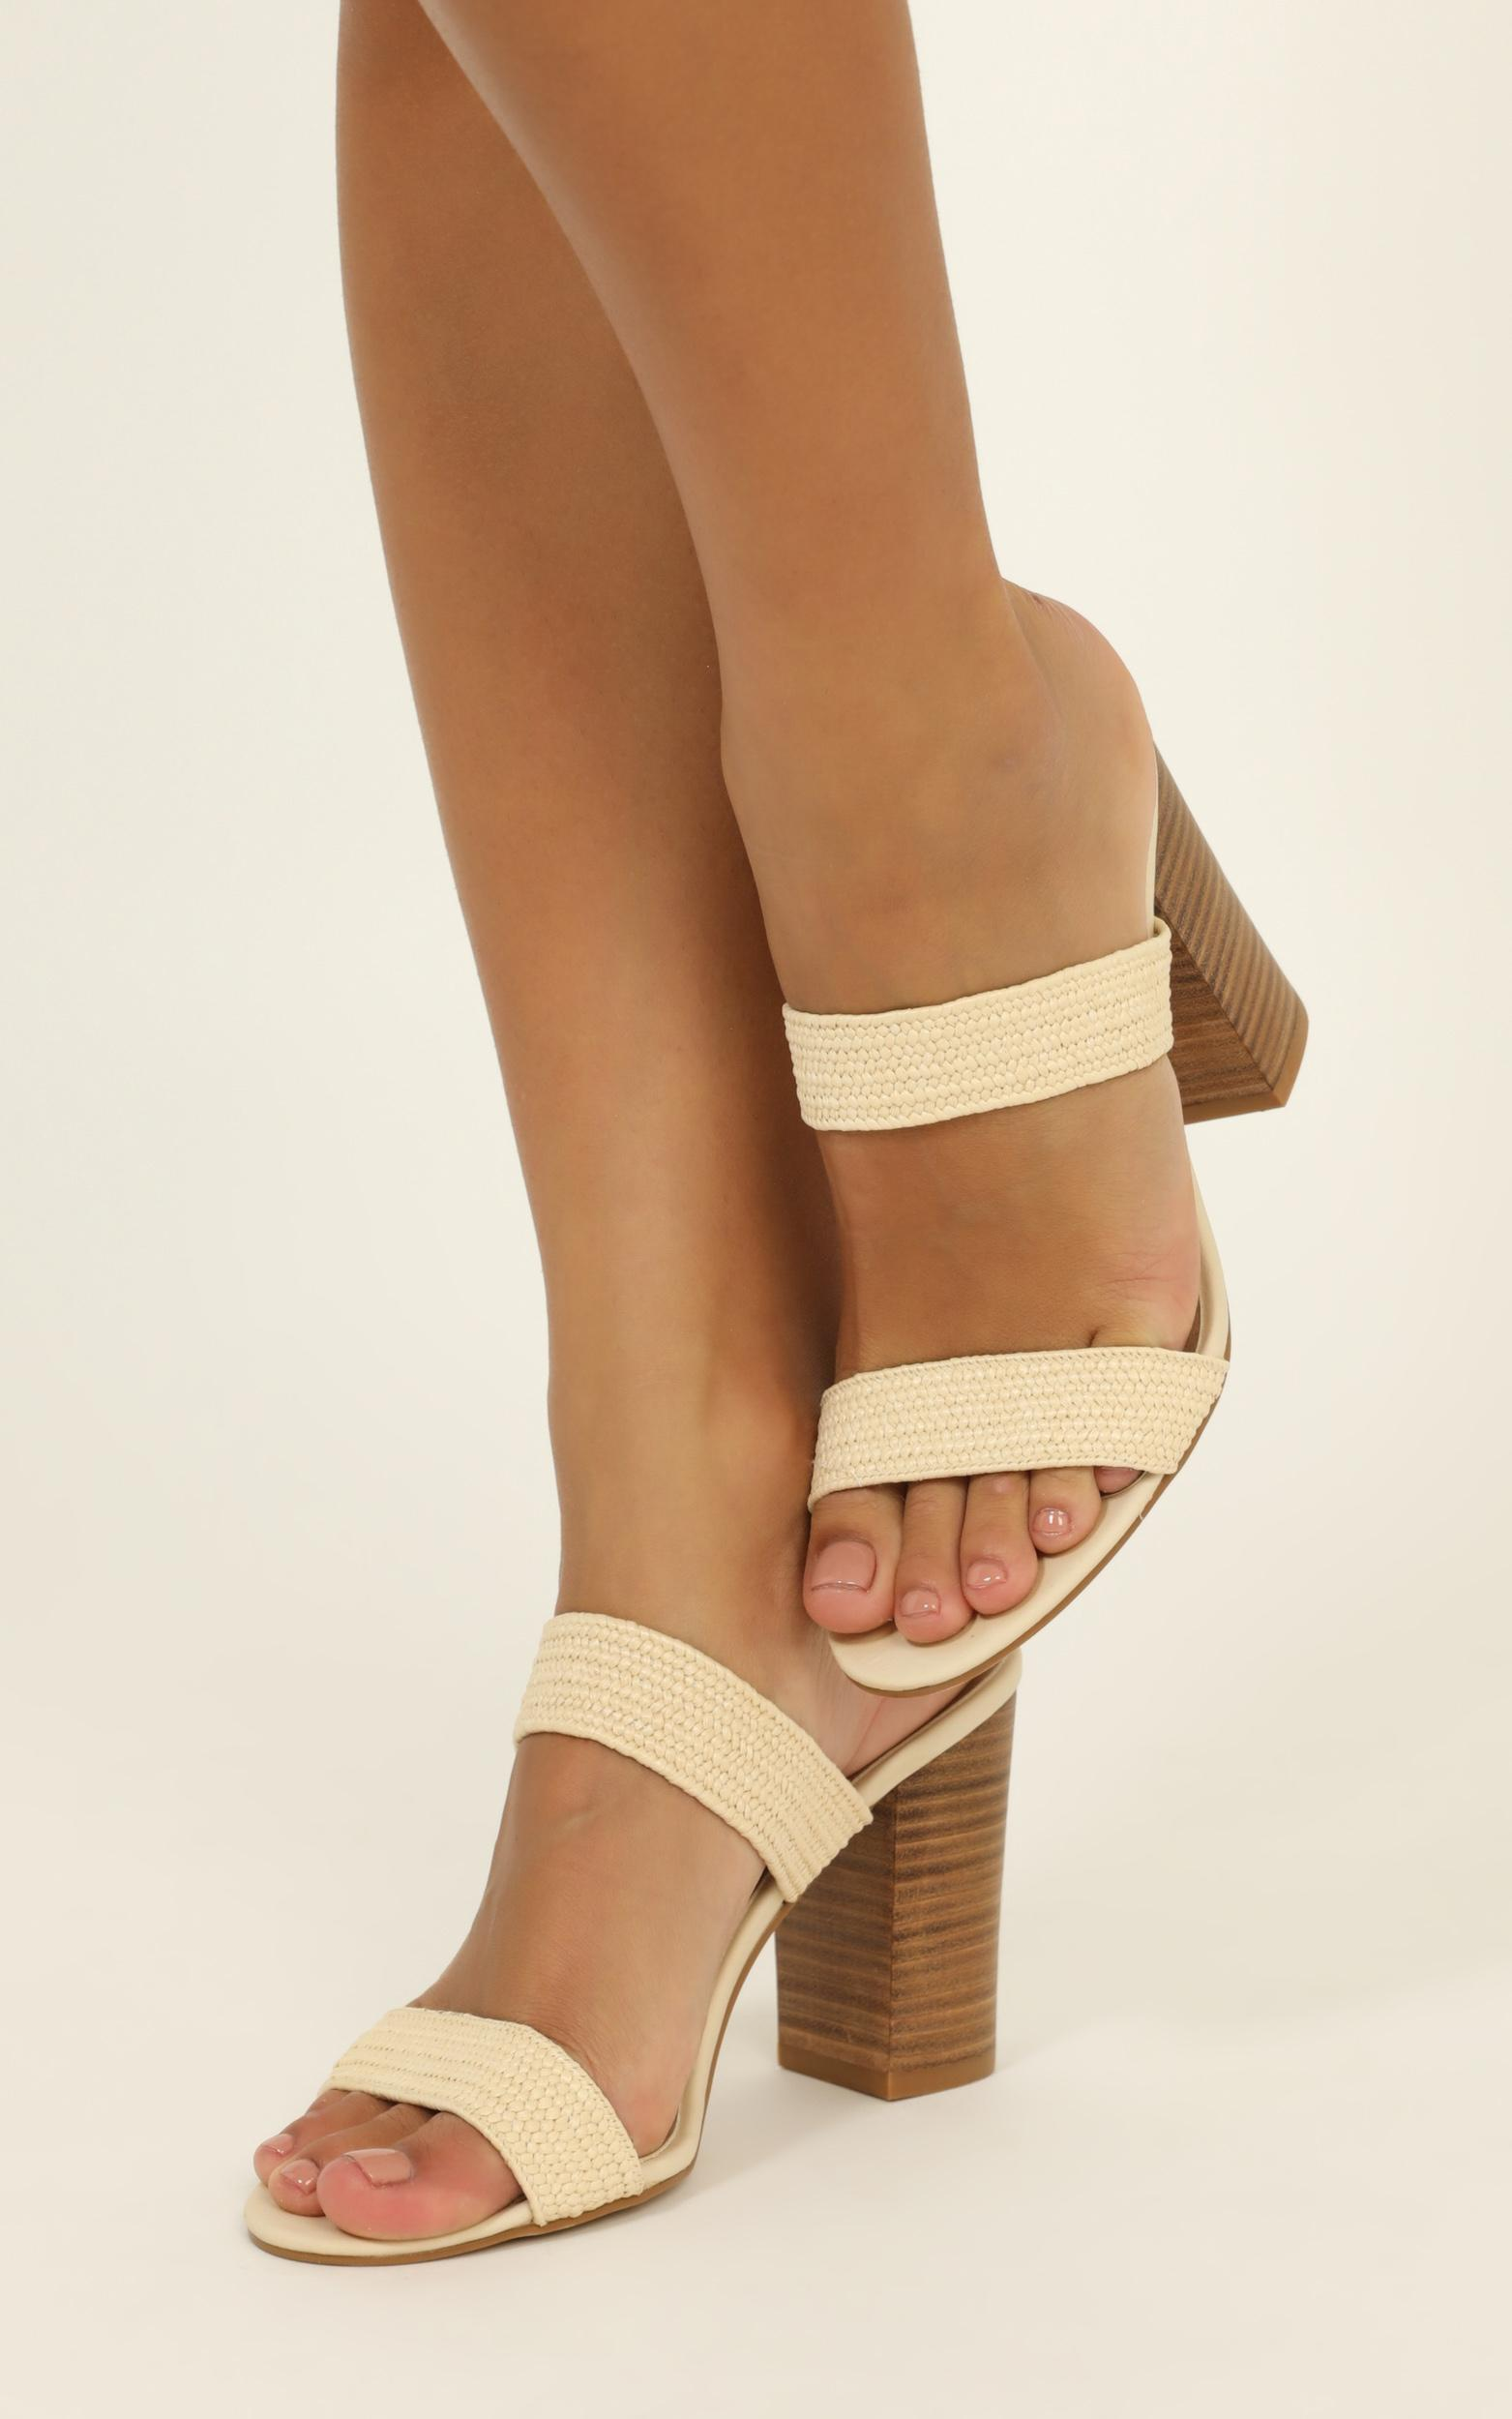 Billini - Nora Heels in natural stretch woven - 10, Beige, hi-res image number null